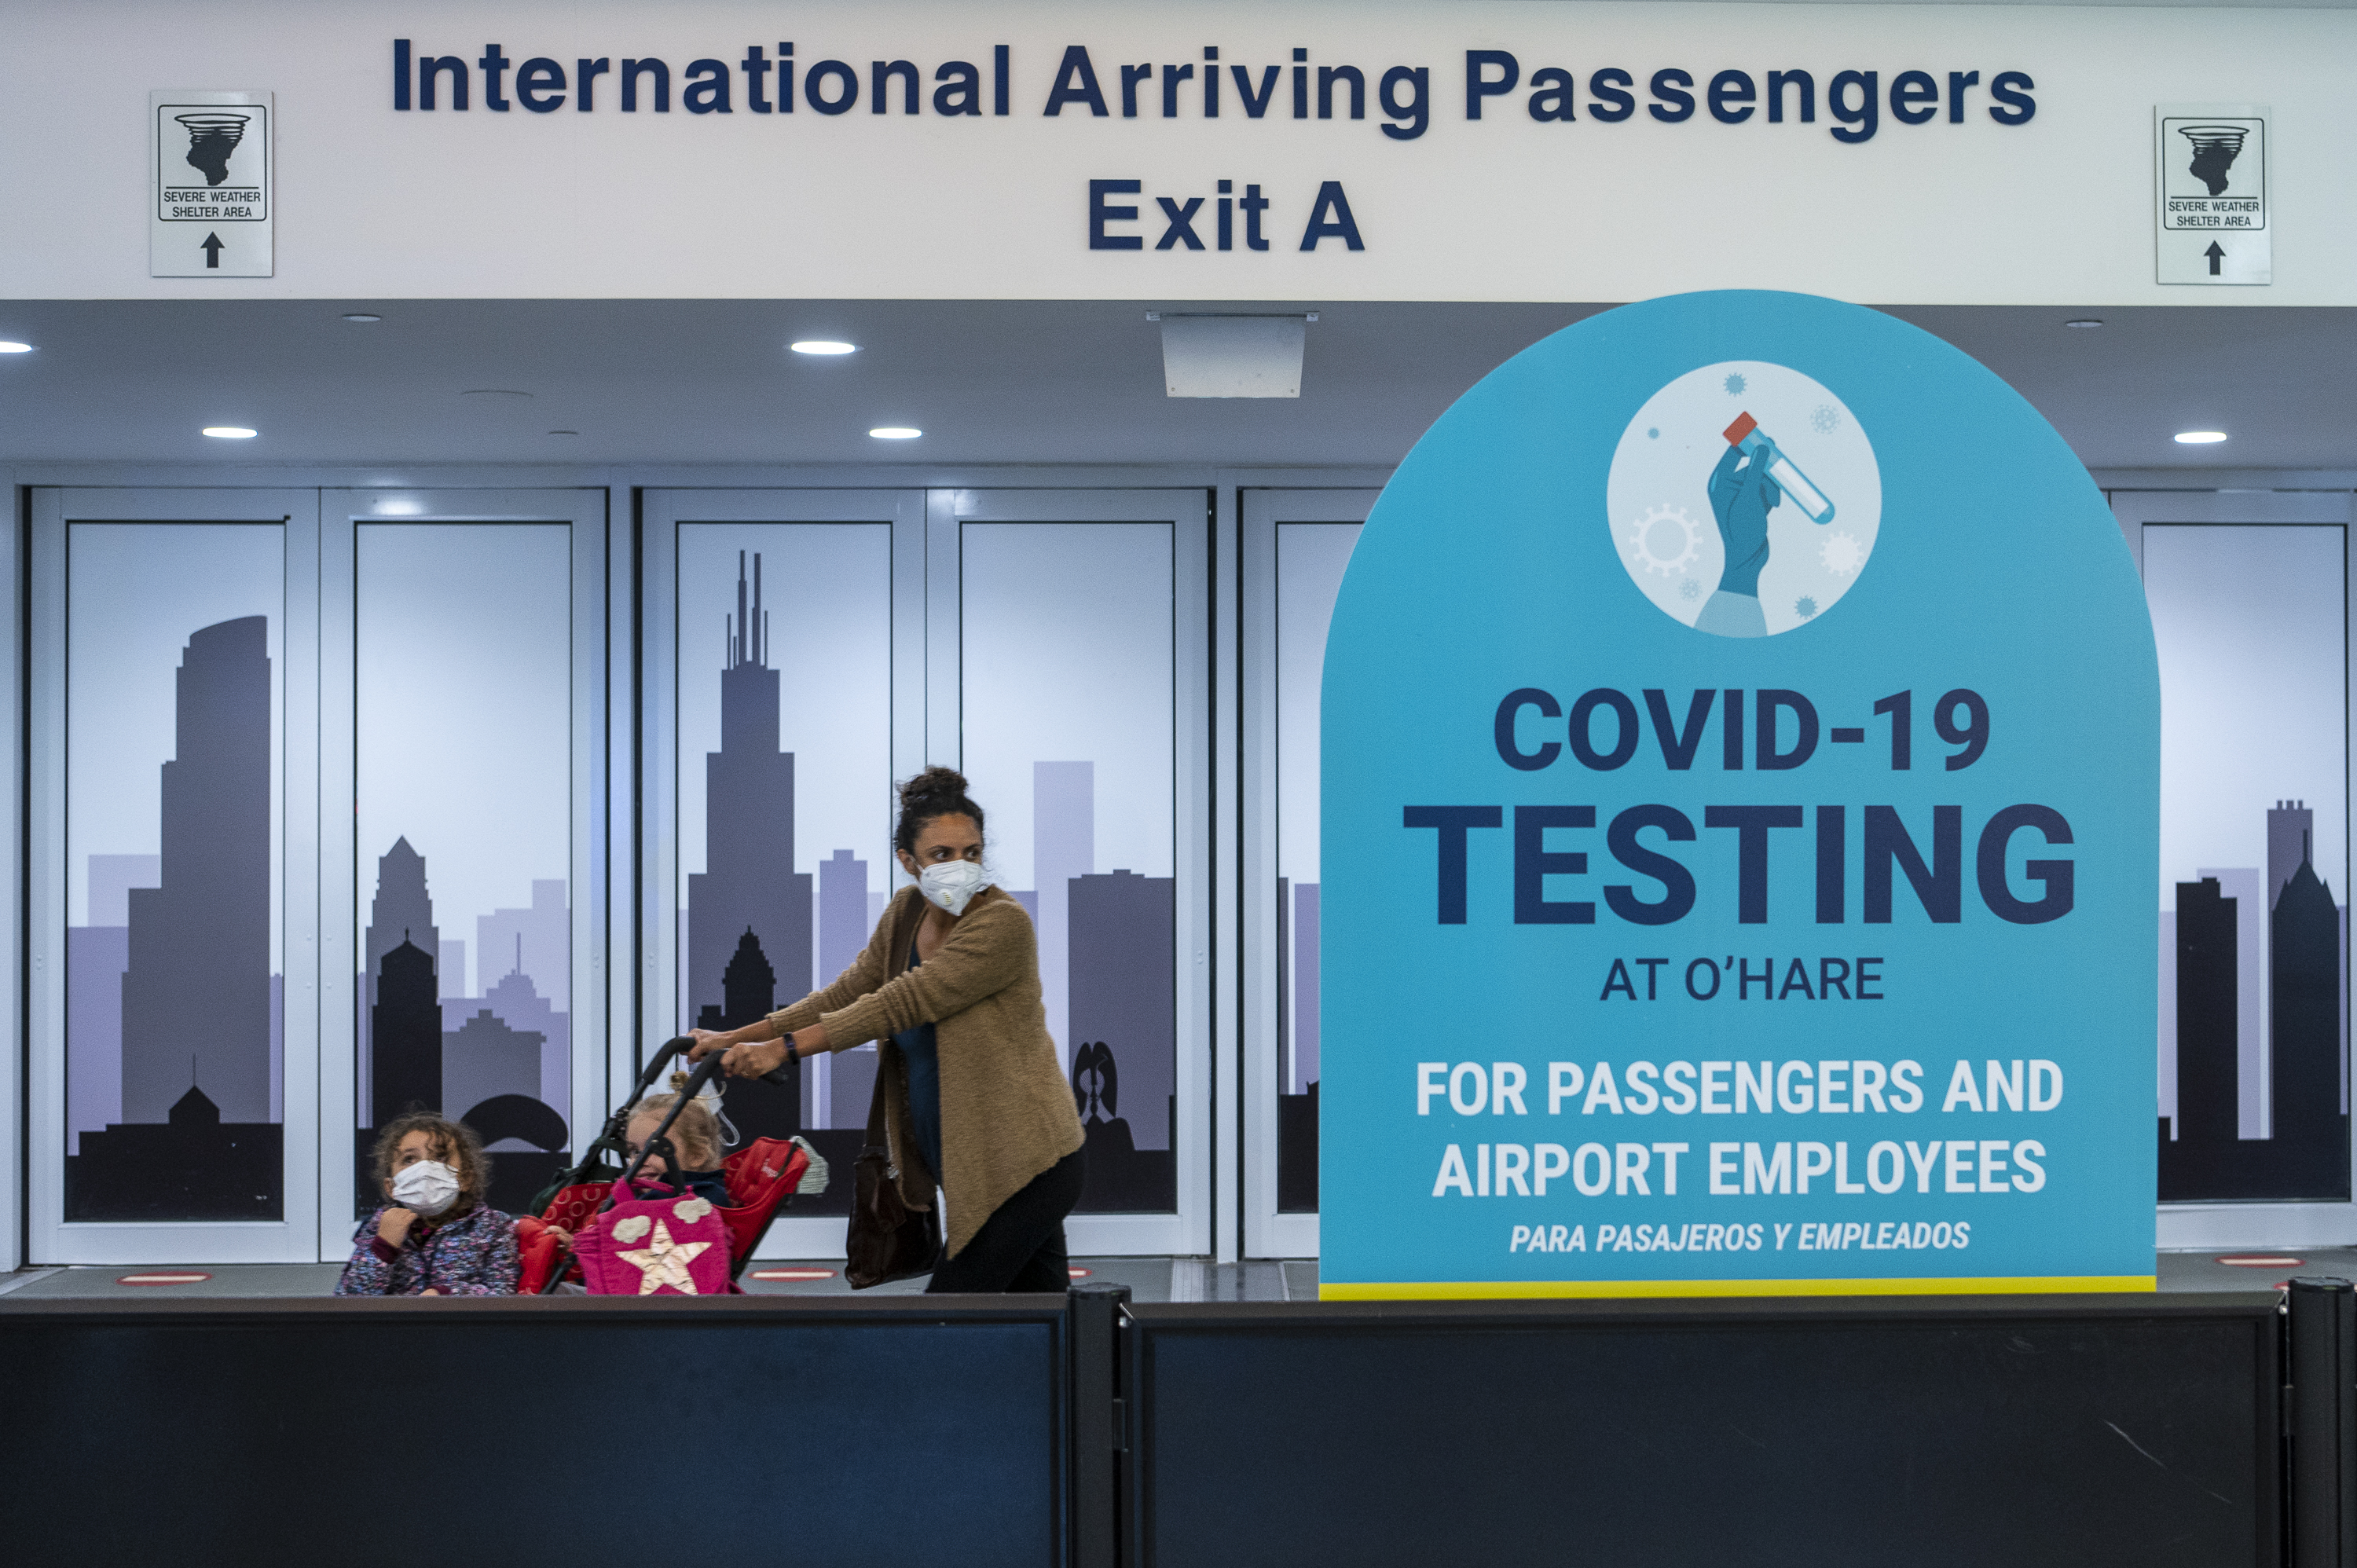 A woman pushes a stroller with children after exiting the security screening at O'hare International Airport's International Terminal, Wednesday, May 26, 2021.